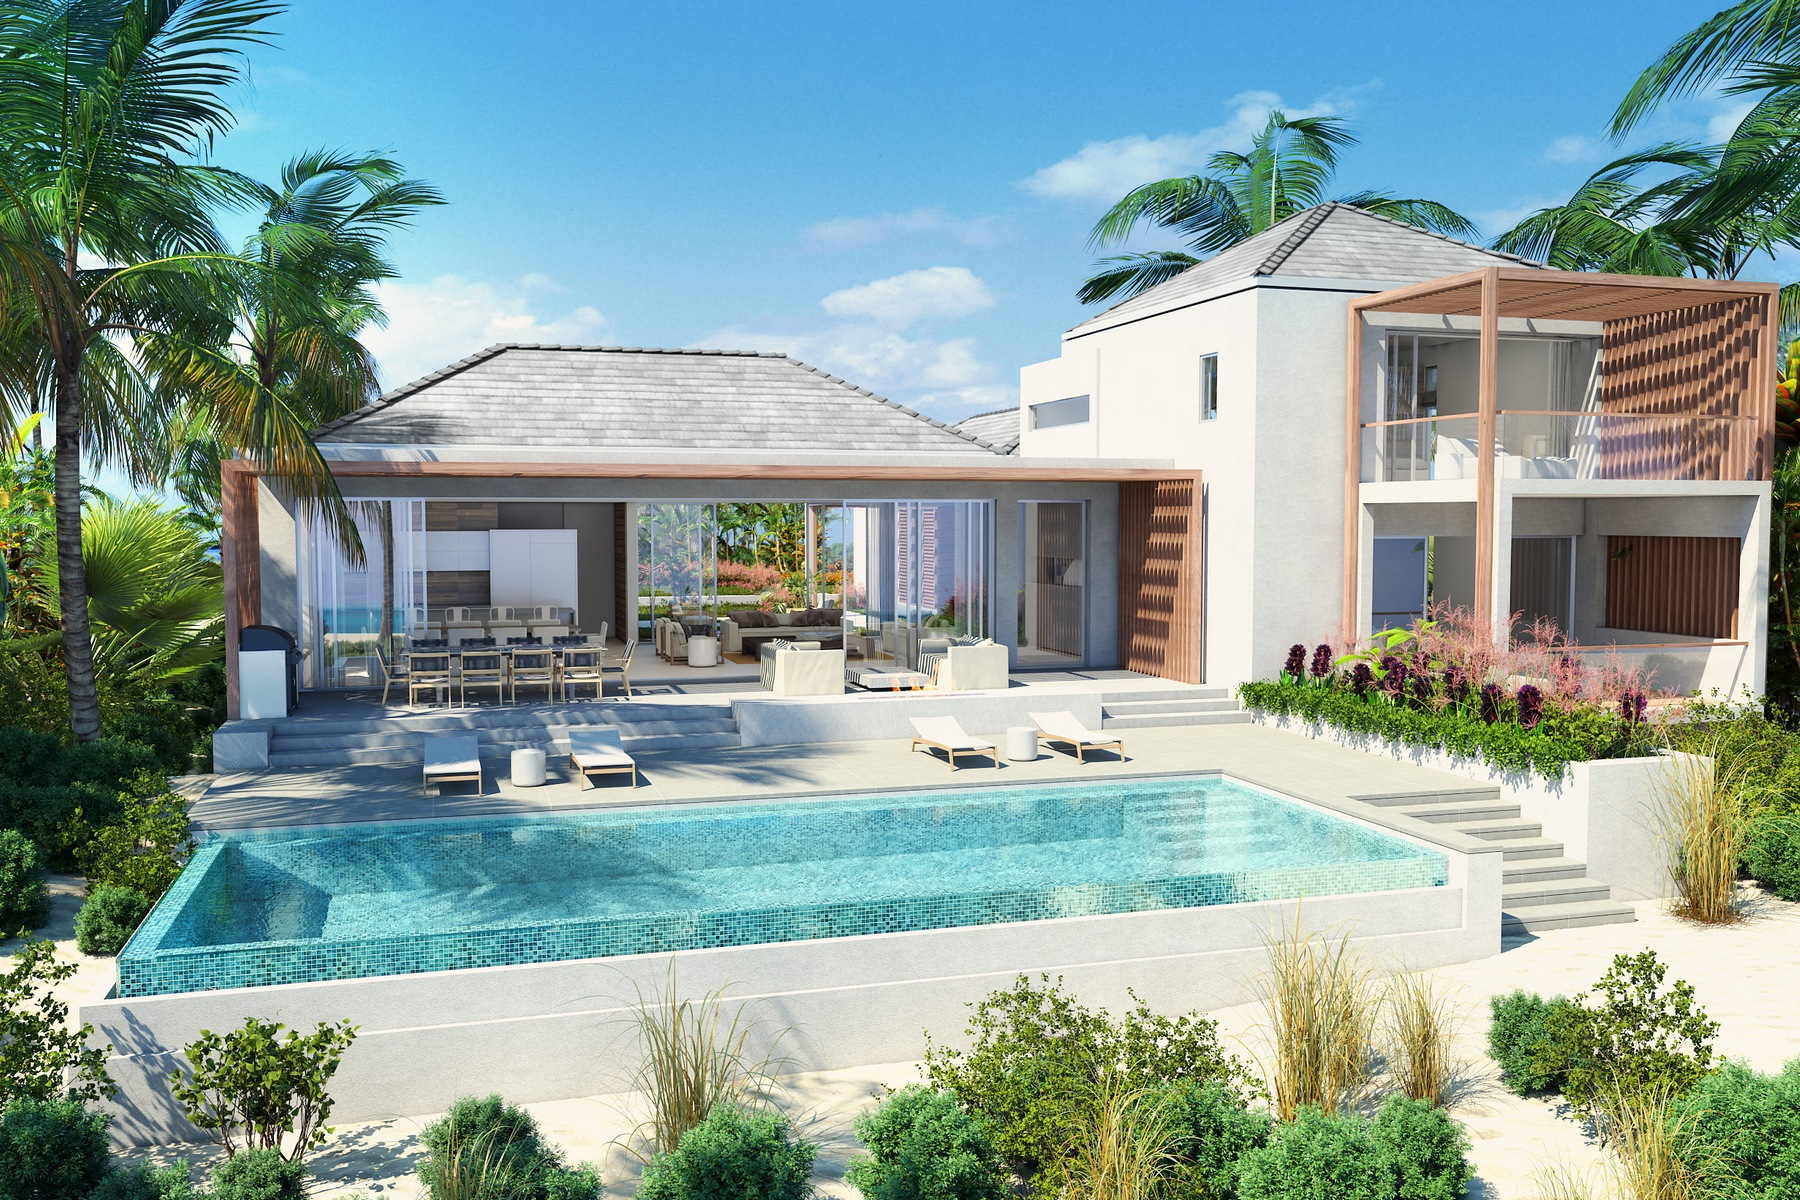 Casa Unifamiliar por un Venta en BEACH ENCLAVE LONG BAY - Design One 4B Beachfront Long Bay, Providenciales TCI Islas Turcas Y Caicos